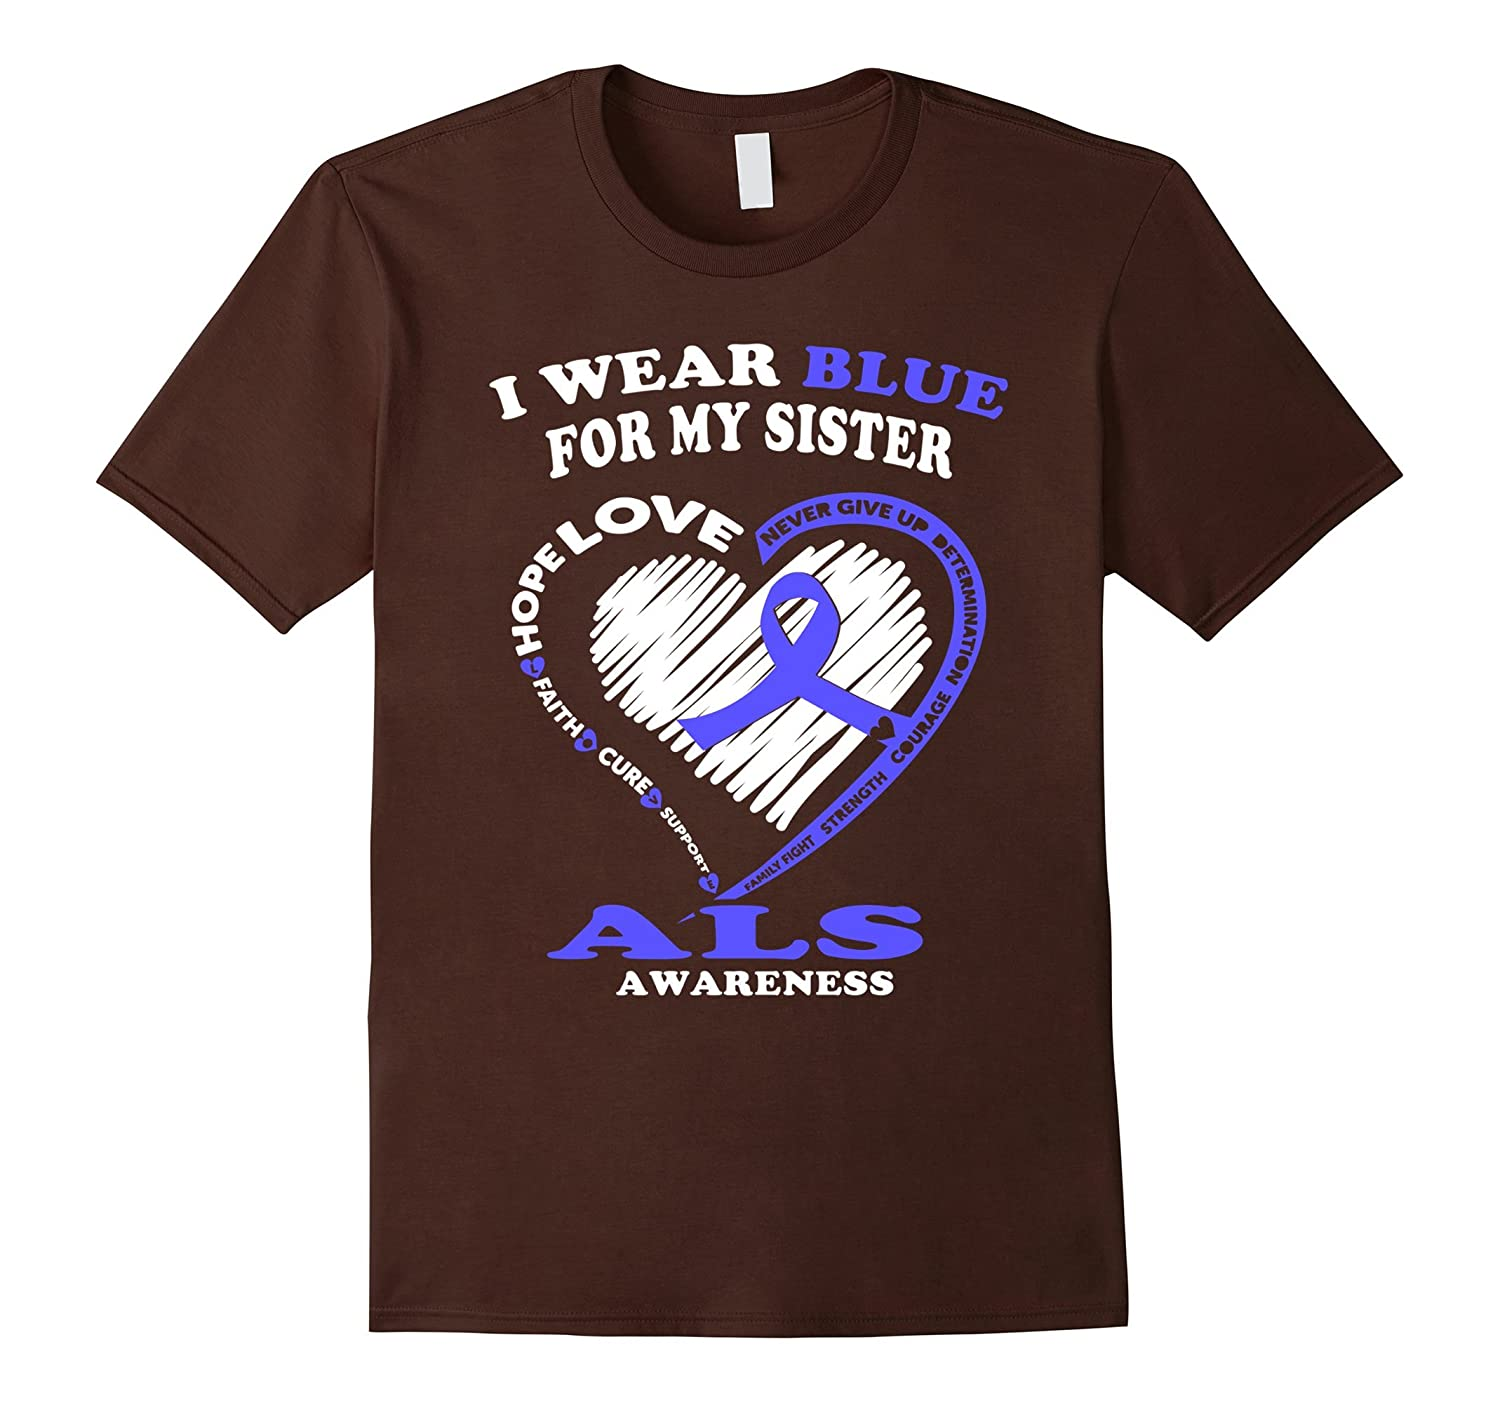 ALS Awareness T Shirt - I Wear Blue For My SIster-CL